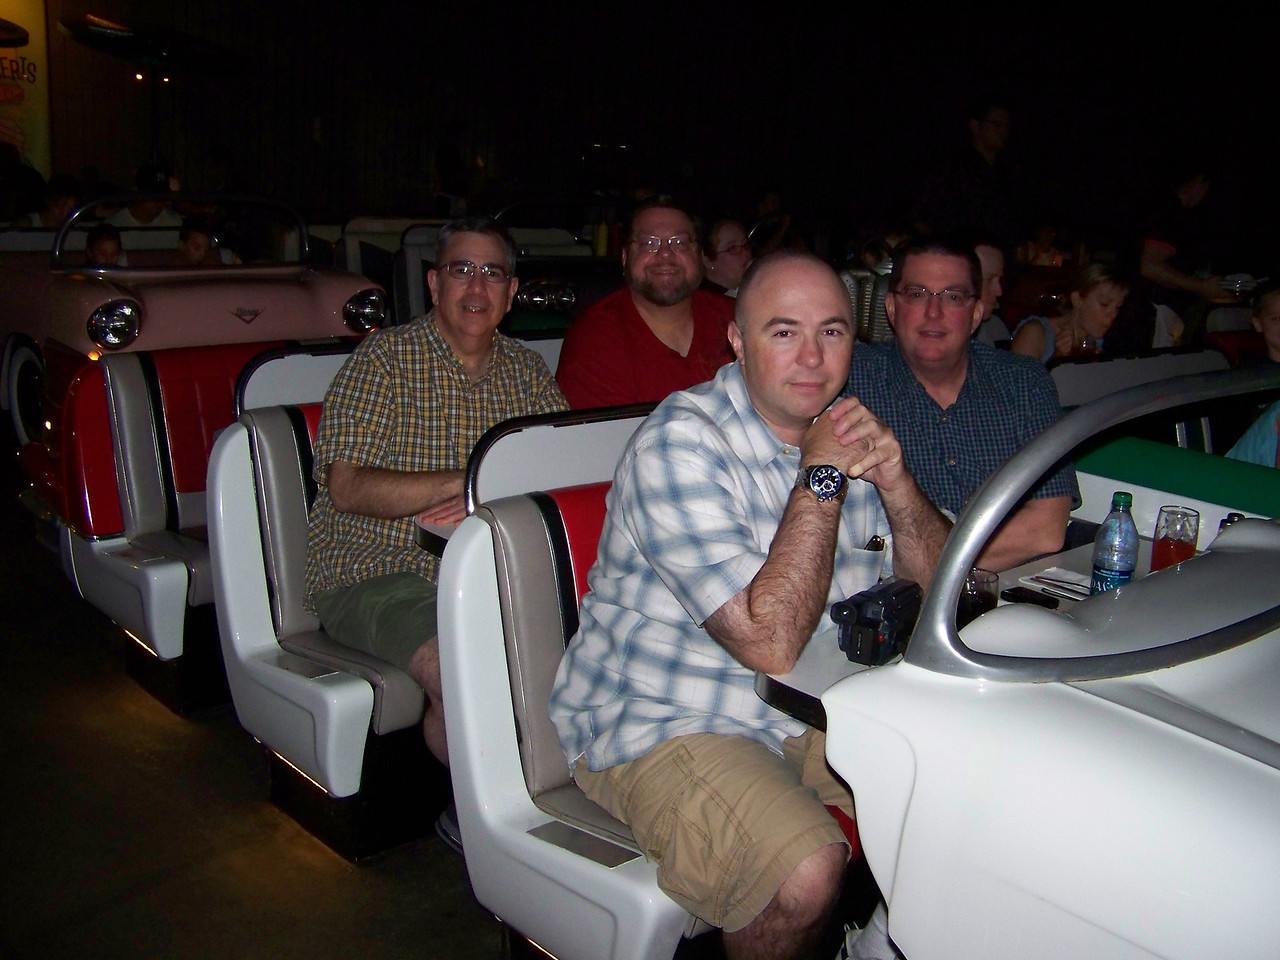 Our waitress took this shot of all four of us in the car at the Sci-Fi Dine-In Theater.  Pat and Jeff are in the front row, with Dave and Jon in the middle row.  As you can see, each car can seat up to six, but the third row in our car remained empty while we were there.<br /> [Disney's Hollywood Studios]